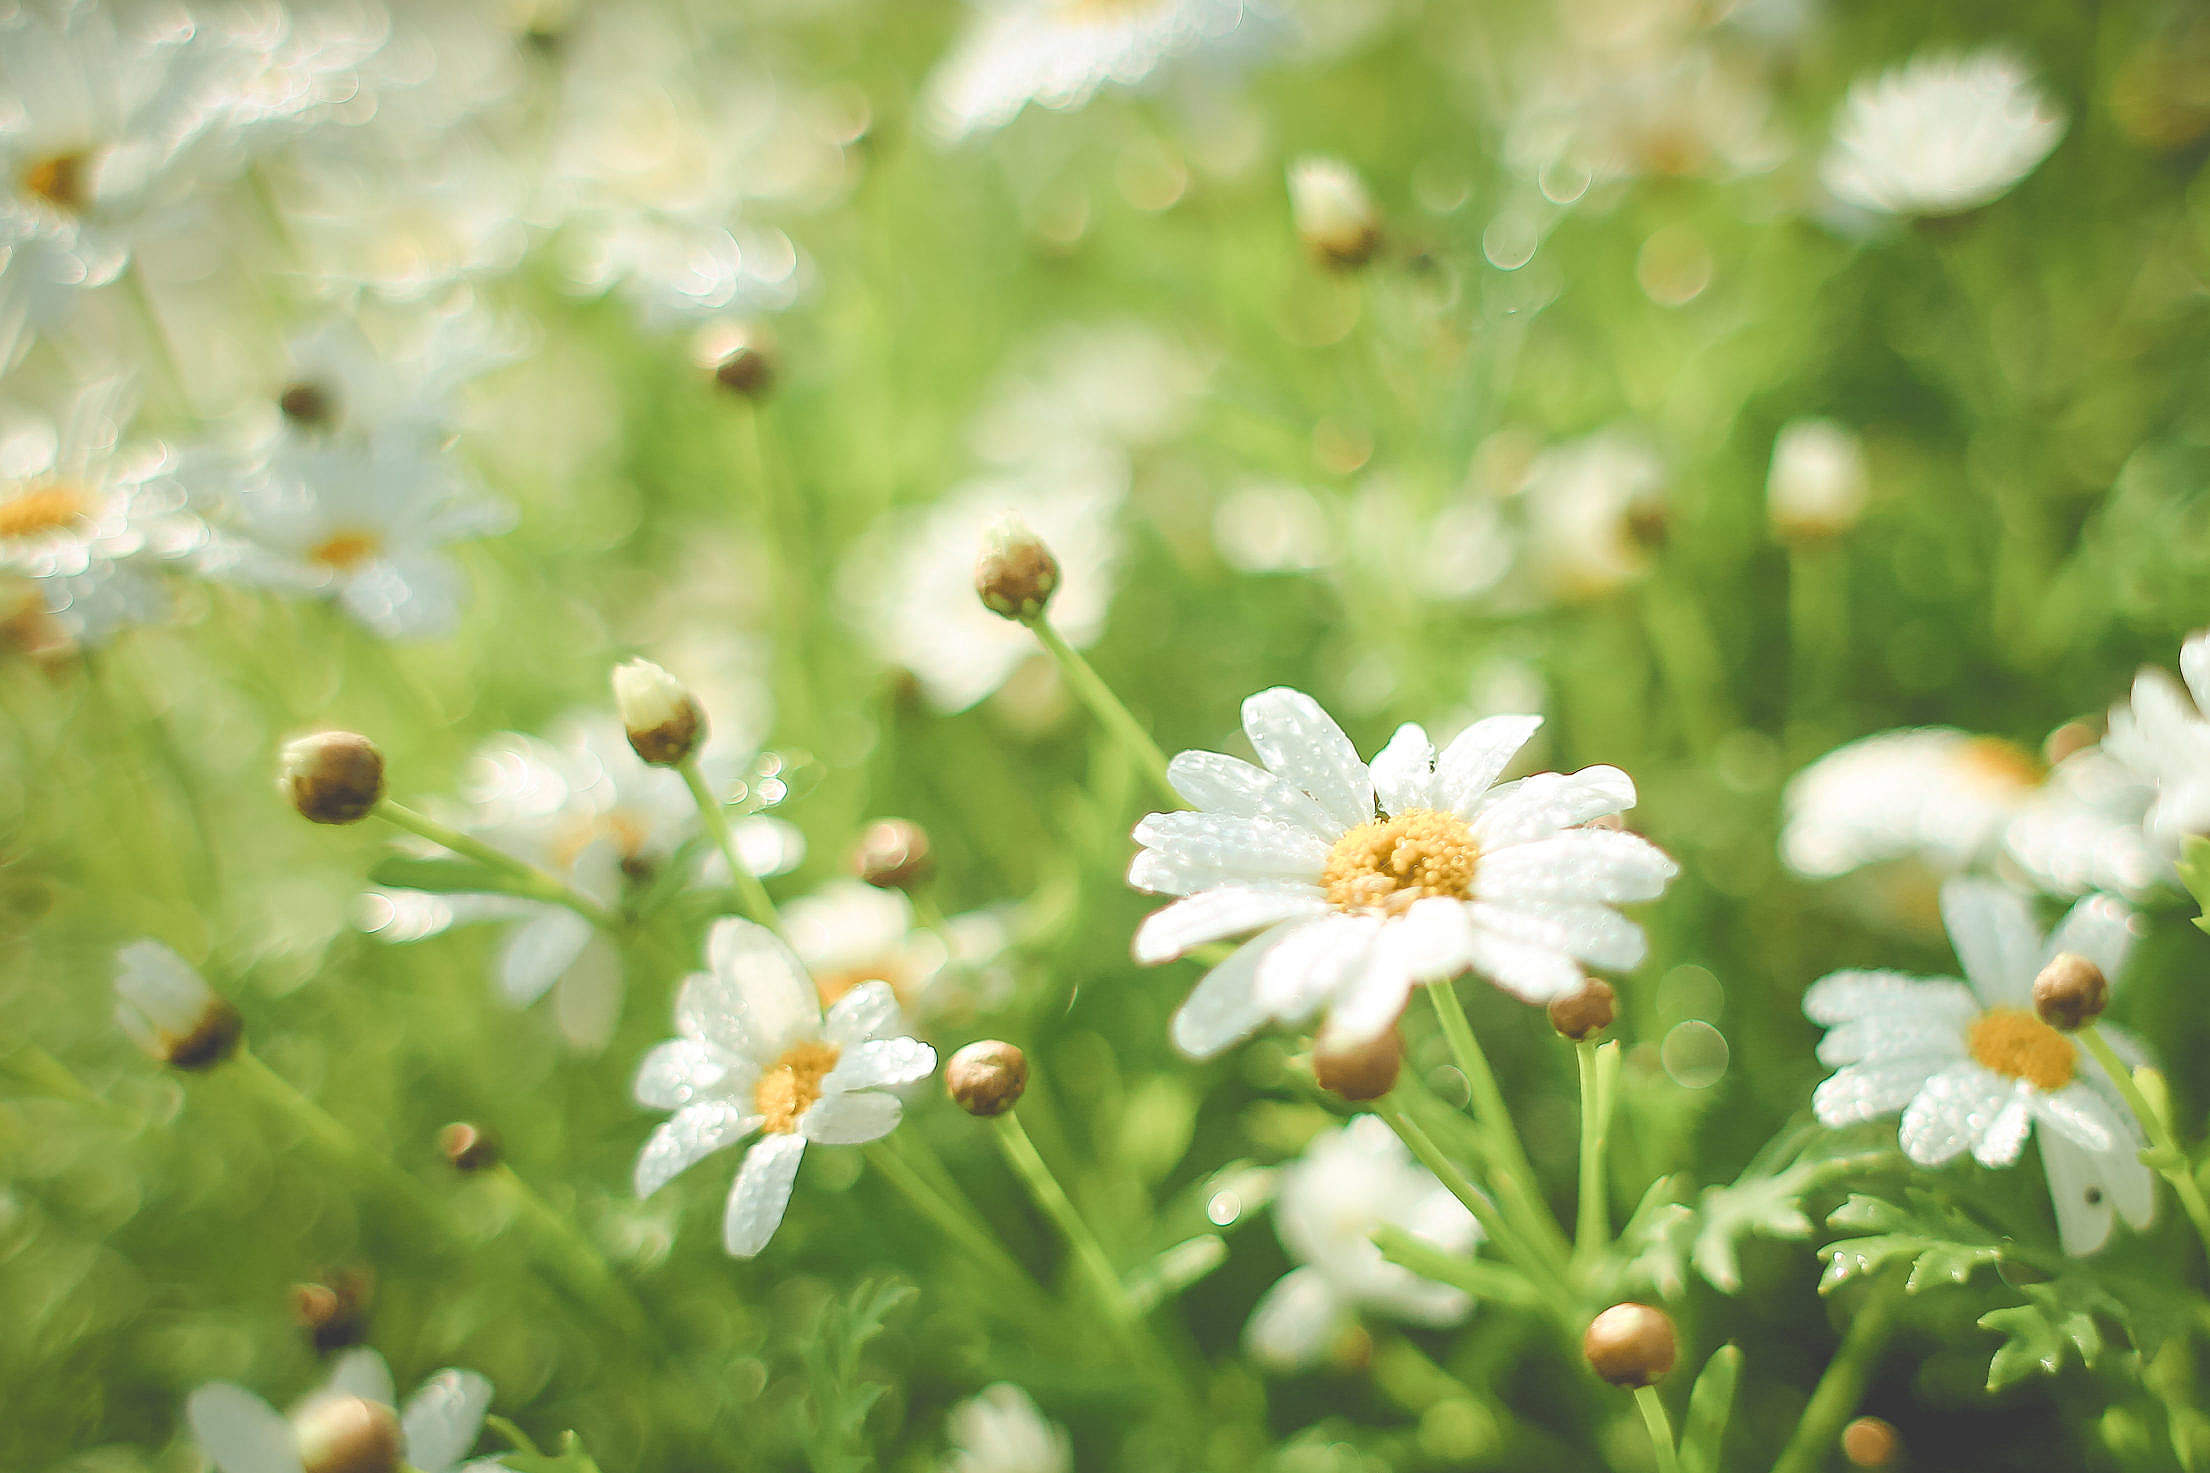 Summer Daisy Field Free Stock Photo